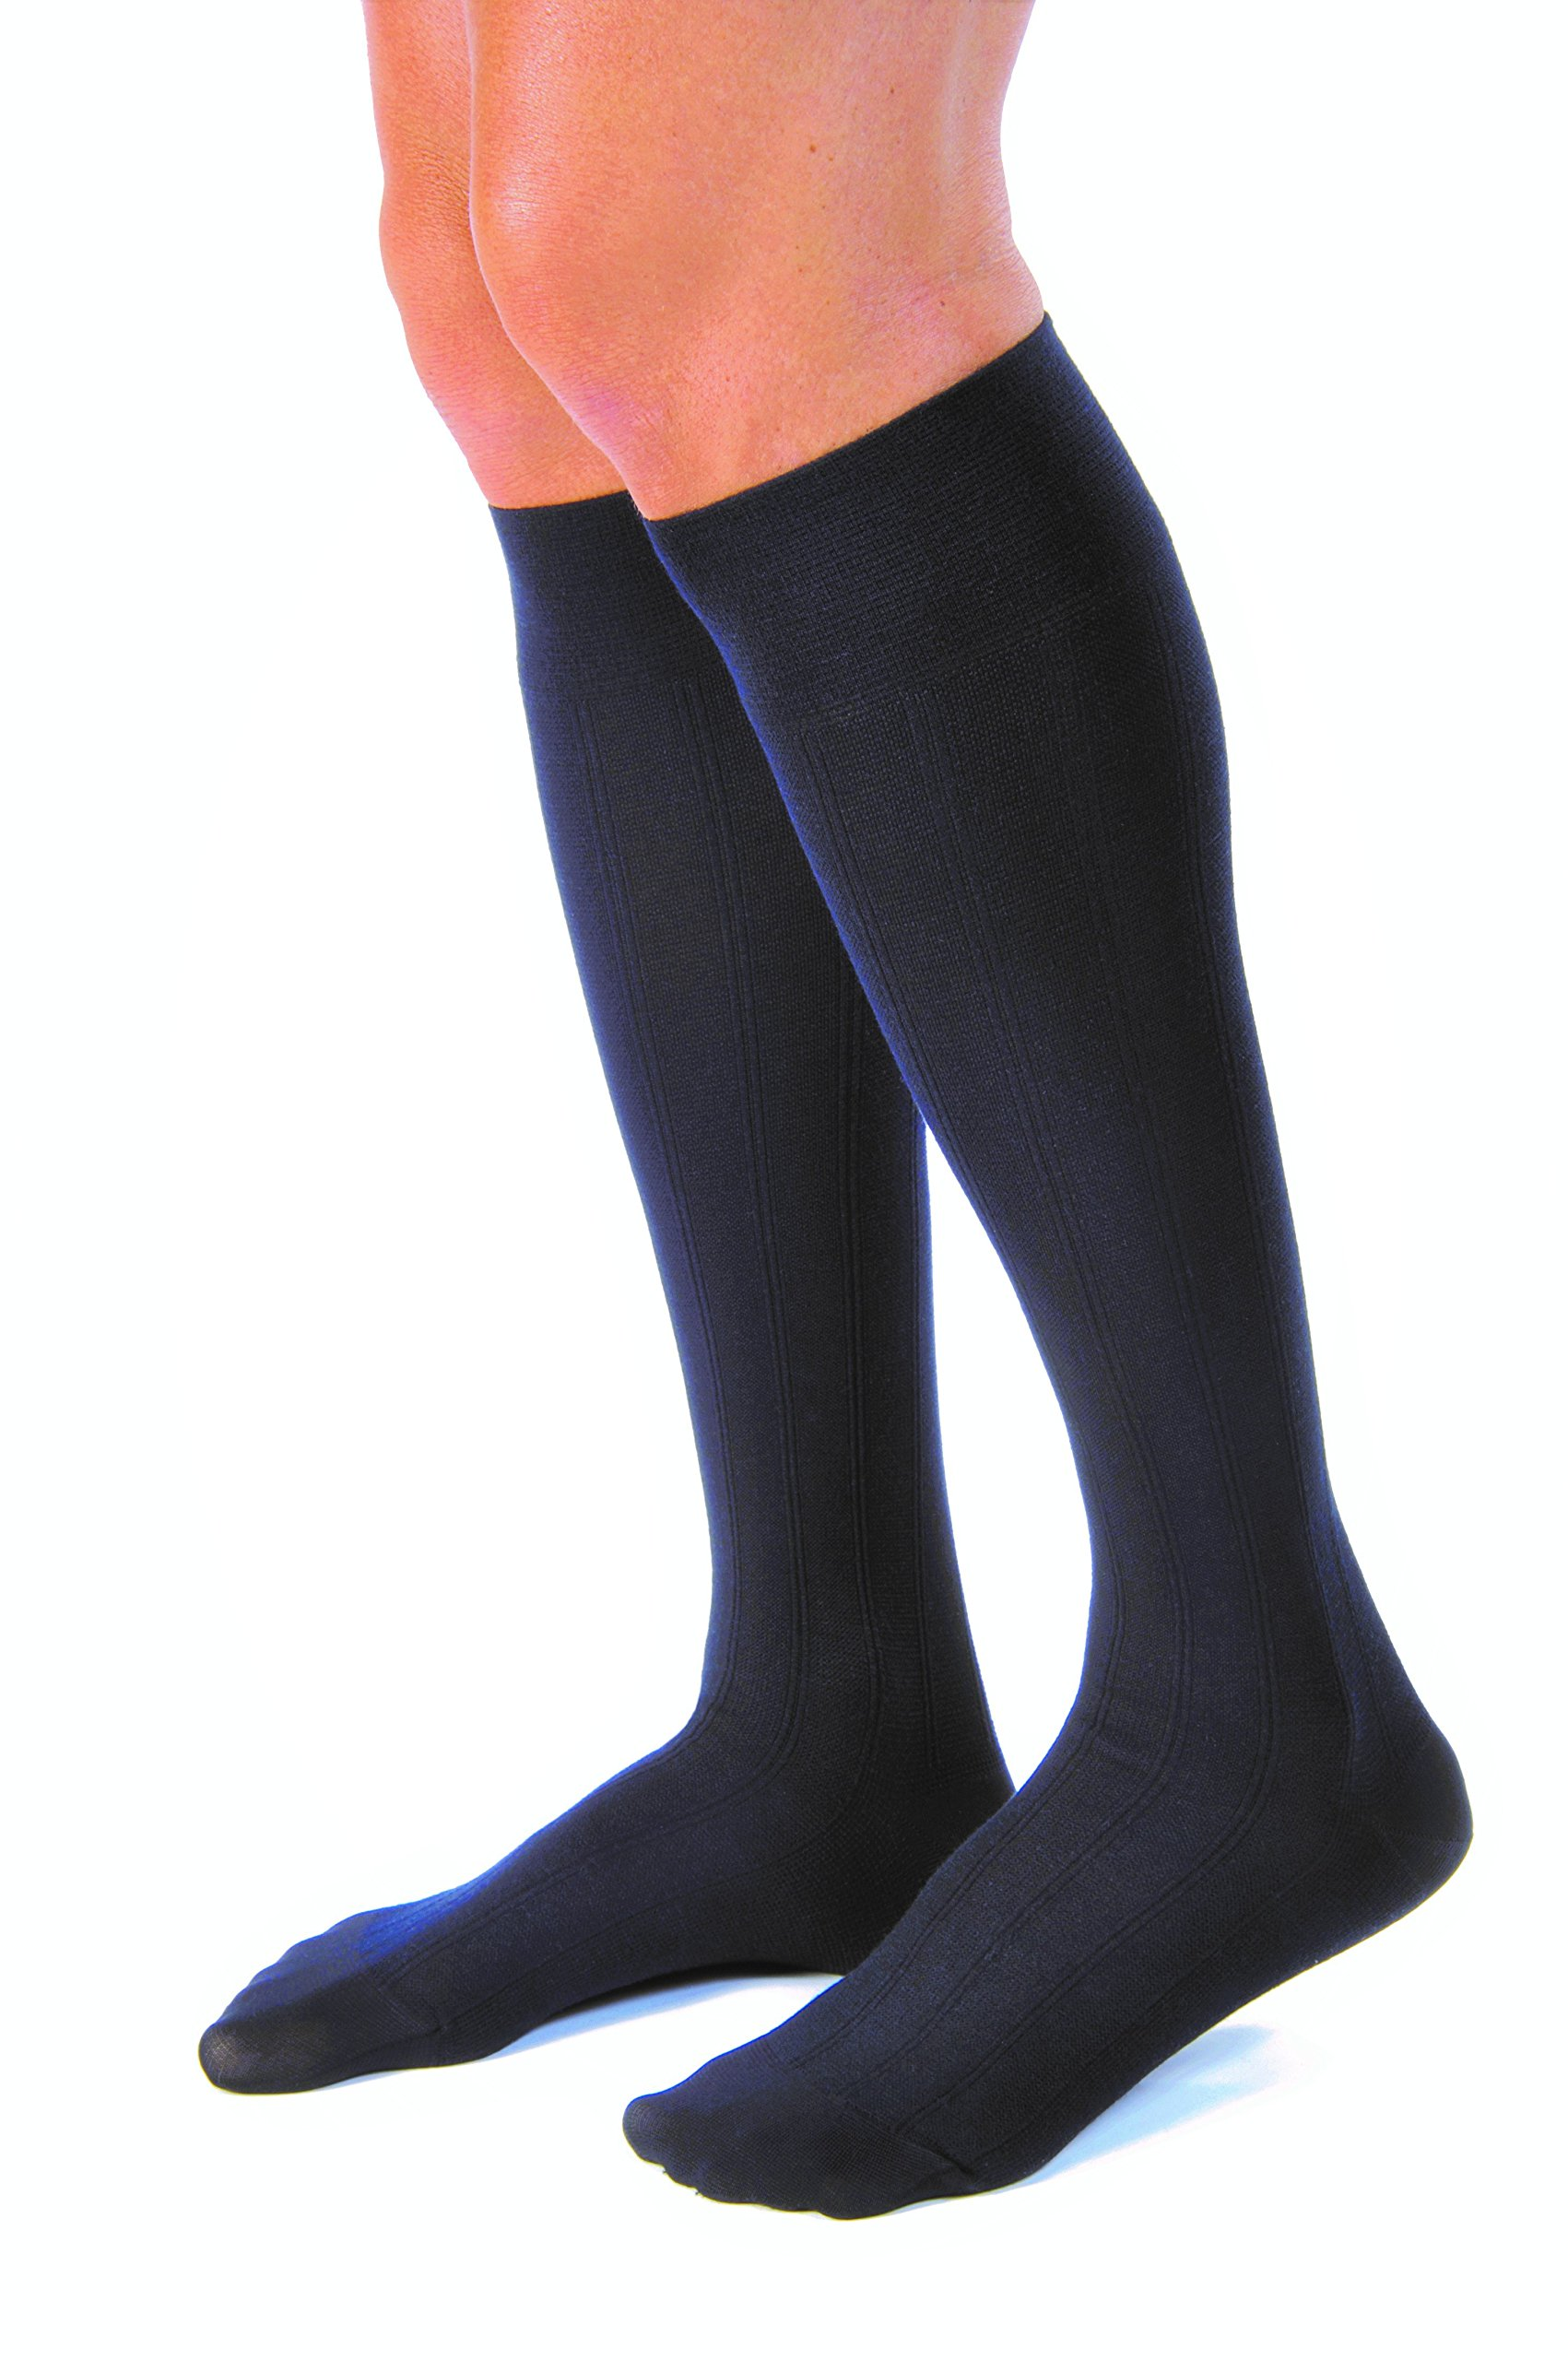 JOBST forMen Casual 20-30 mmHg Knee High Compression Socks, Navy, X-Large by JOBST